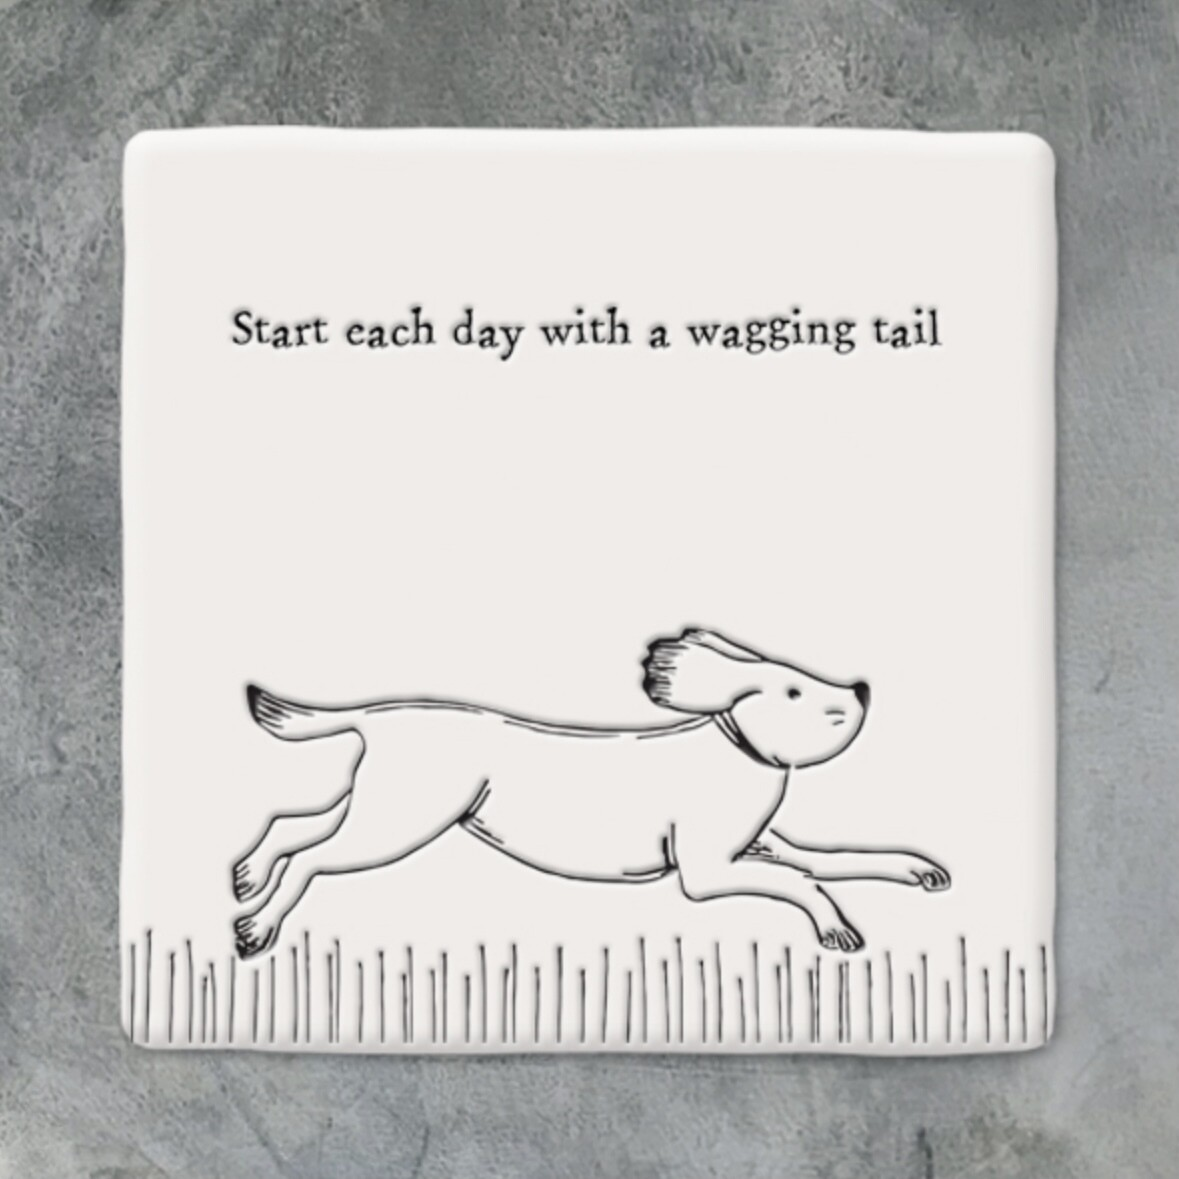 East of India Ceramic Coaster - Start Each Day With a Wagging Tail